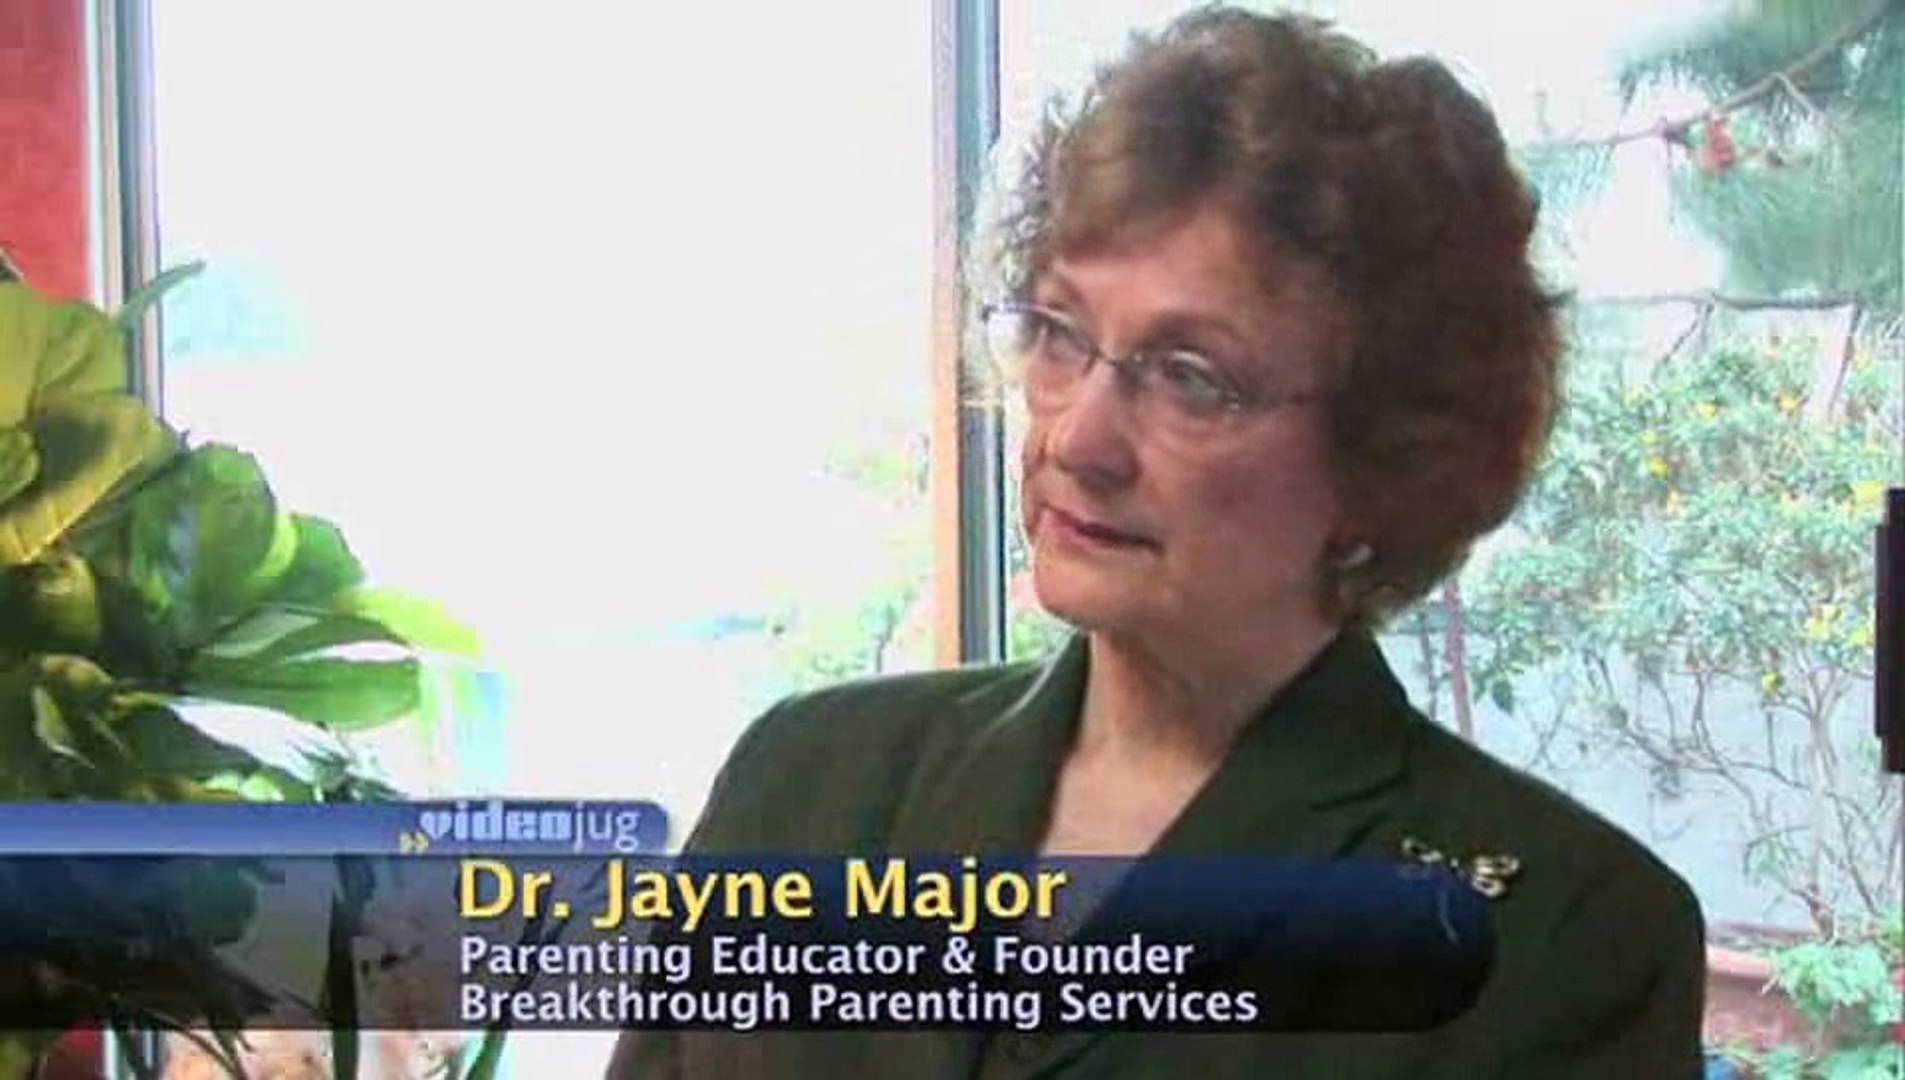 Is parenting education just for parents with